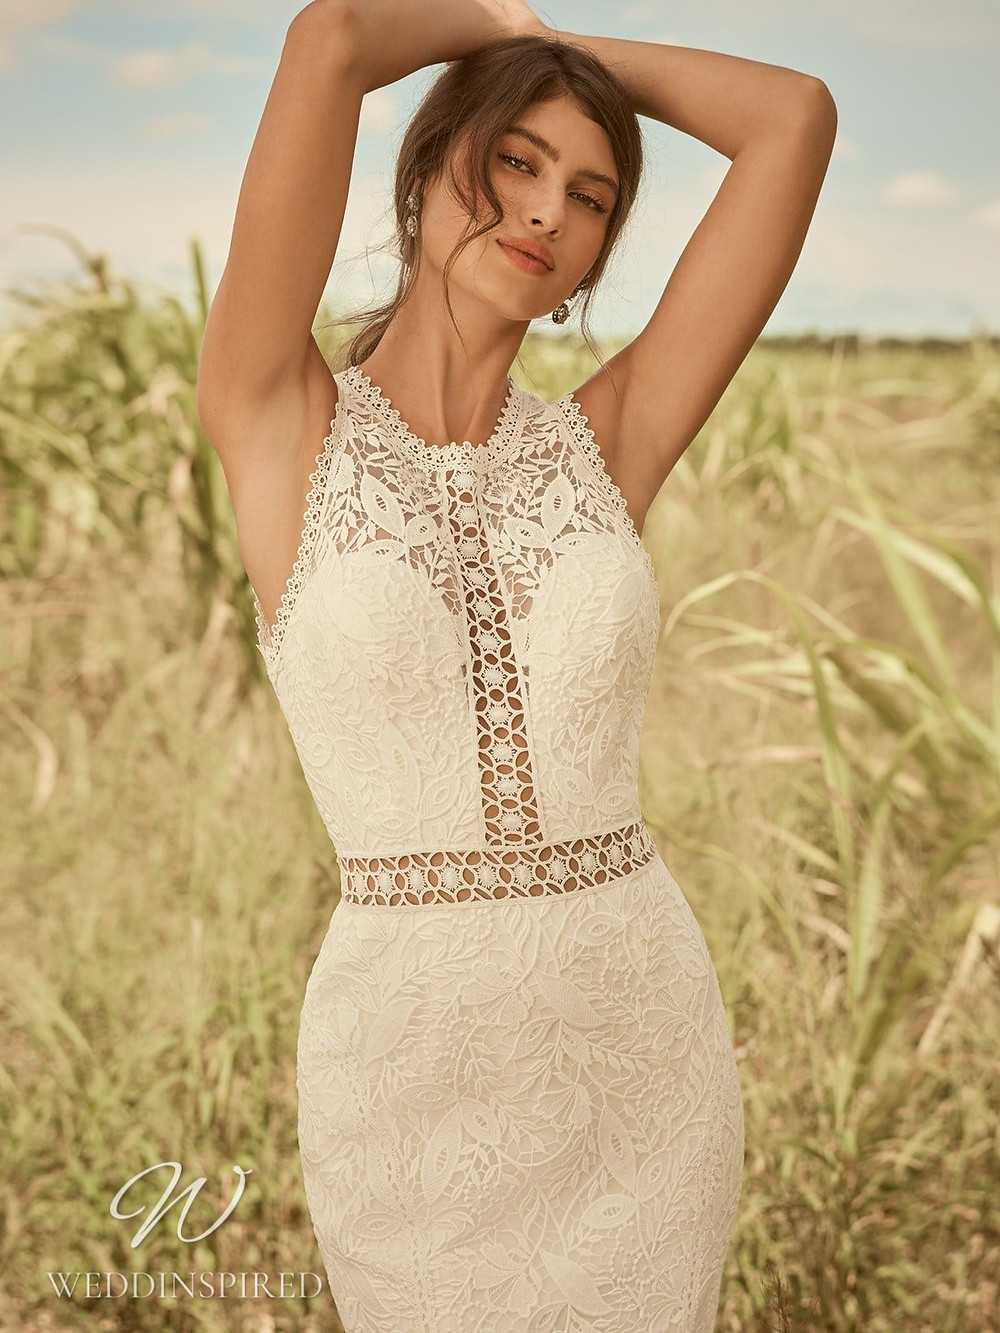 A Rebecca Ingram Spring 2021 ivory lace mermaid wedding dress with a high neckline and straps